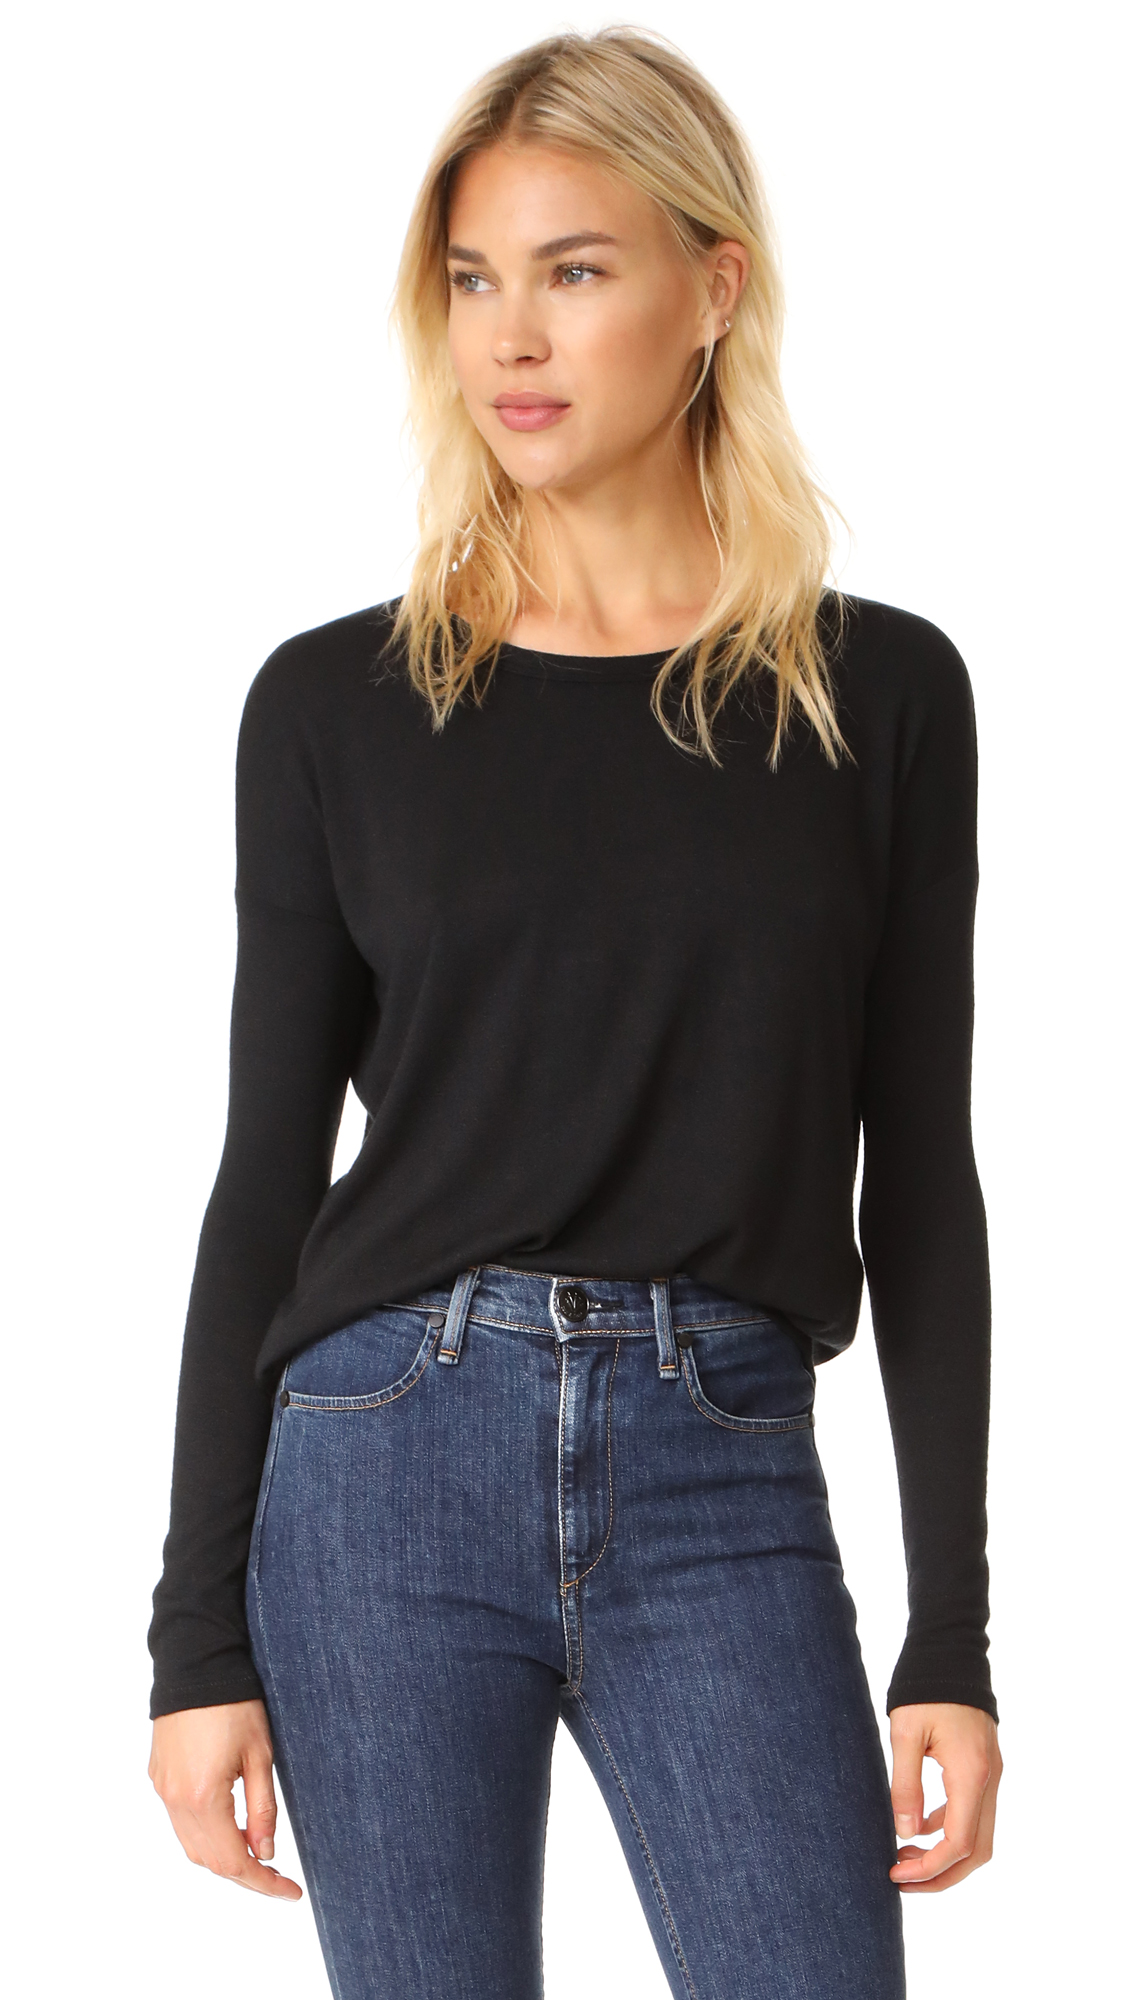 Rag & Bone/JEAN Hudson Long Sleeve Tee - Black